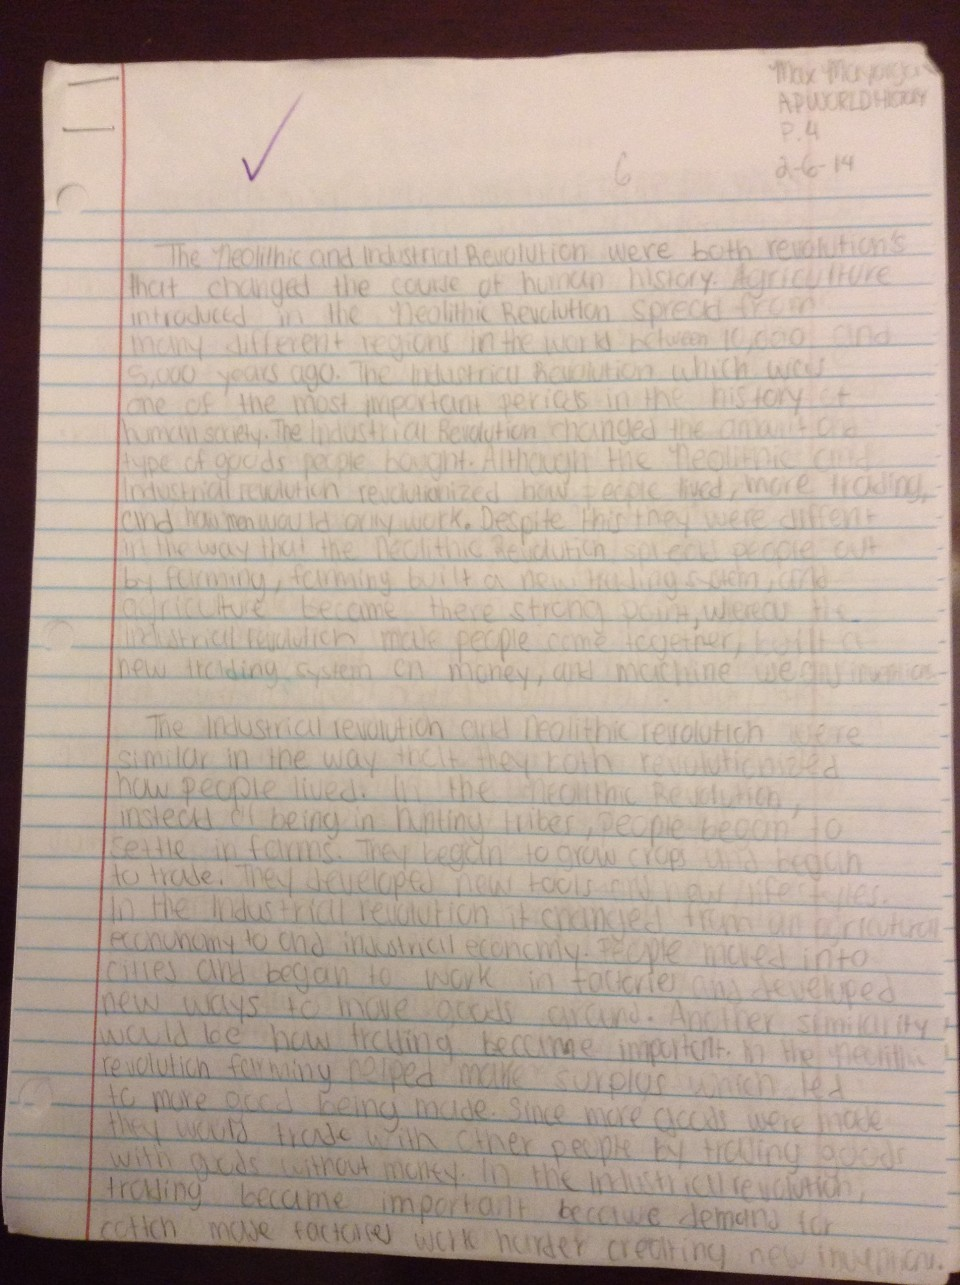 002 Image2010 Neolithic Revolution Essay Fearsome Pdf Conclusion Question 960